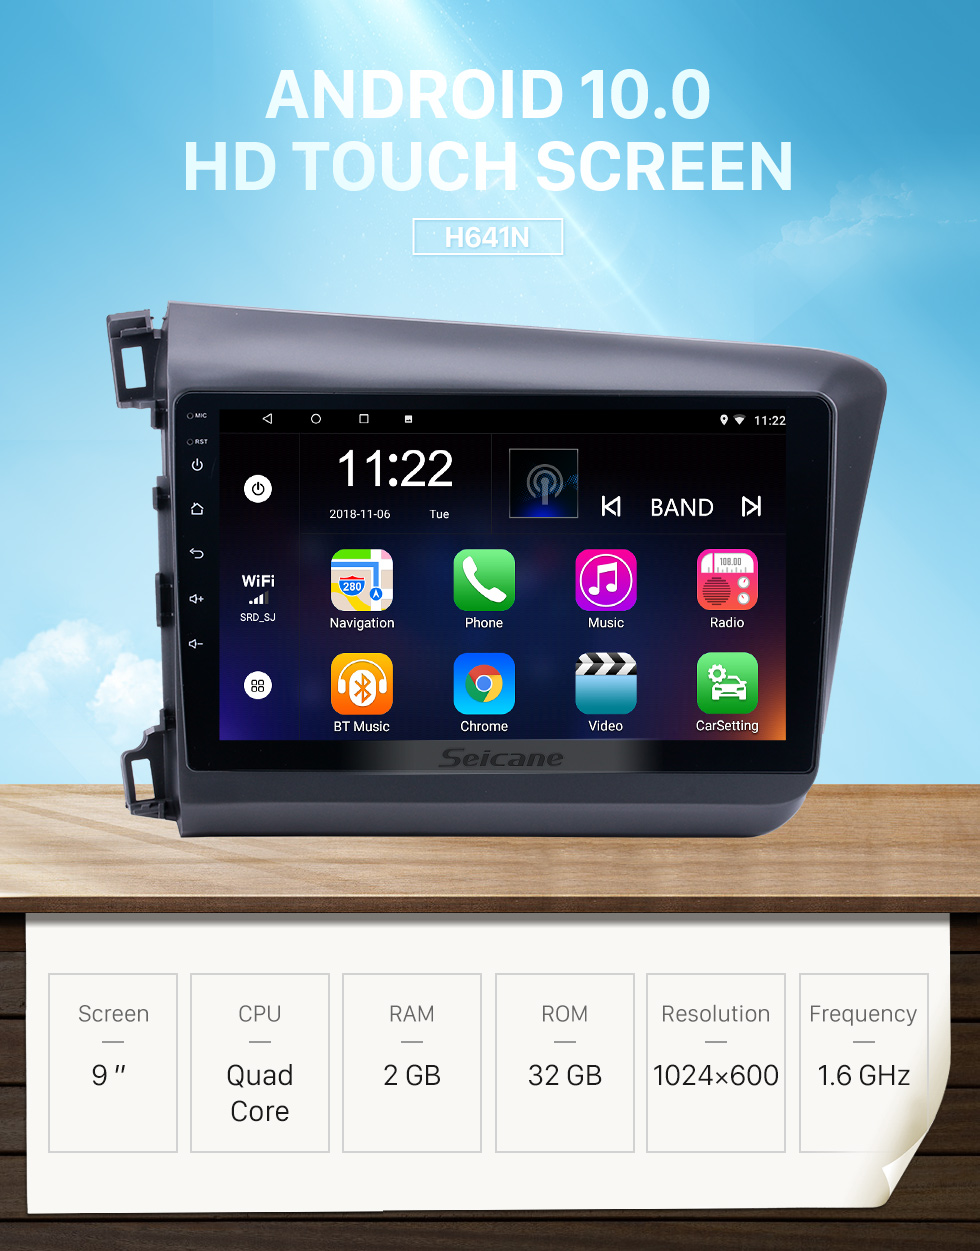 Seicane 9 inch Android 10.0 HD Touchscreen Car Radio for 2012 Honda Civic LHD with Bluetooth Music 3G WiFi Mirror Link OBD2